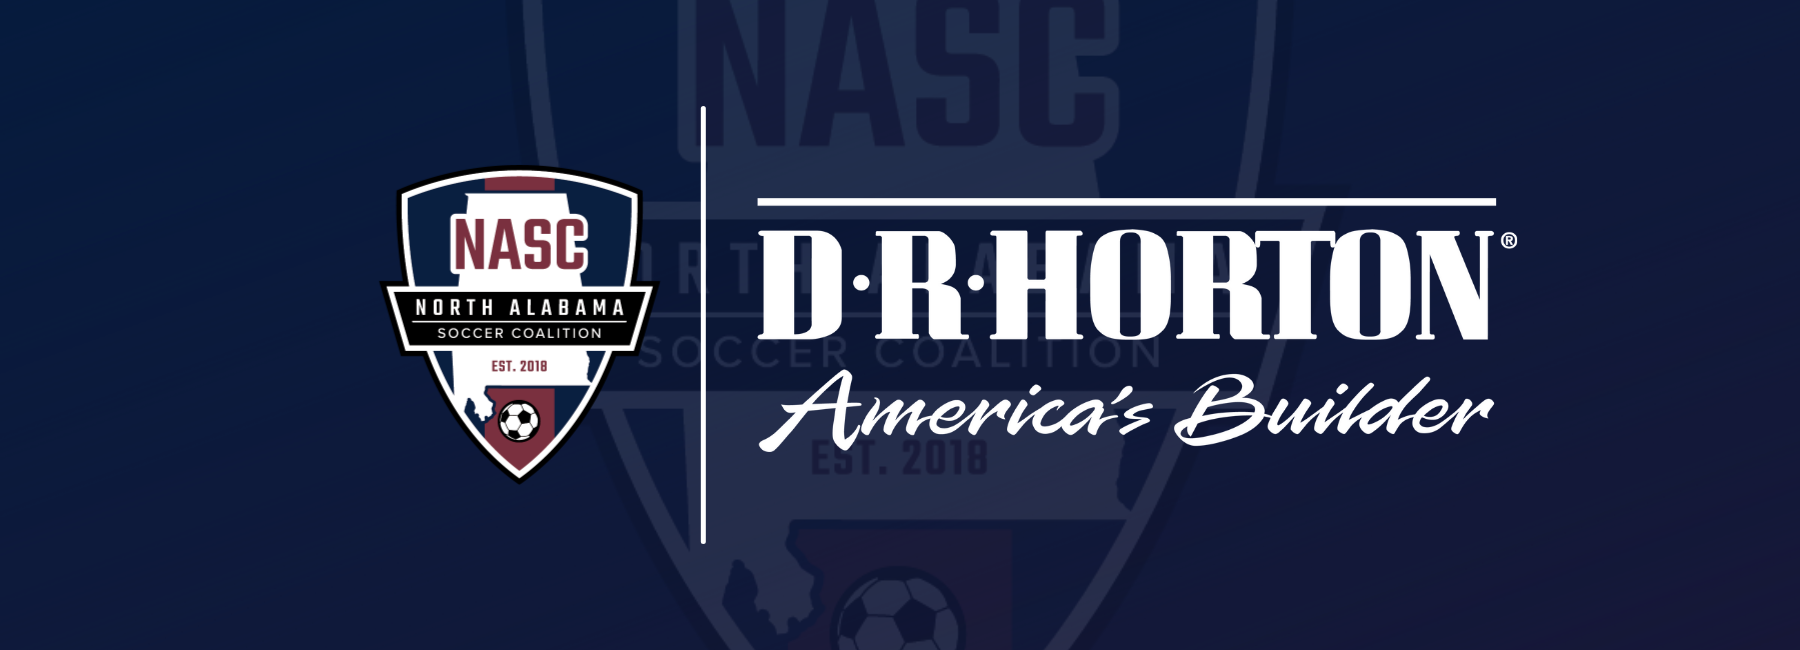 NASC PARTNERS WITH D.R. HORTON